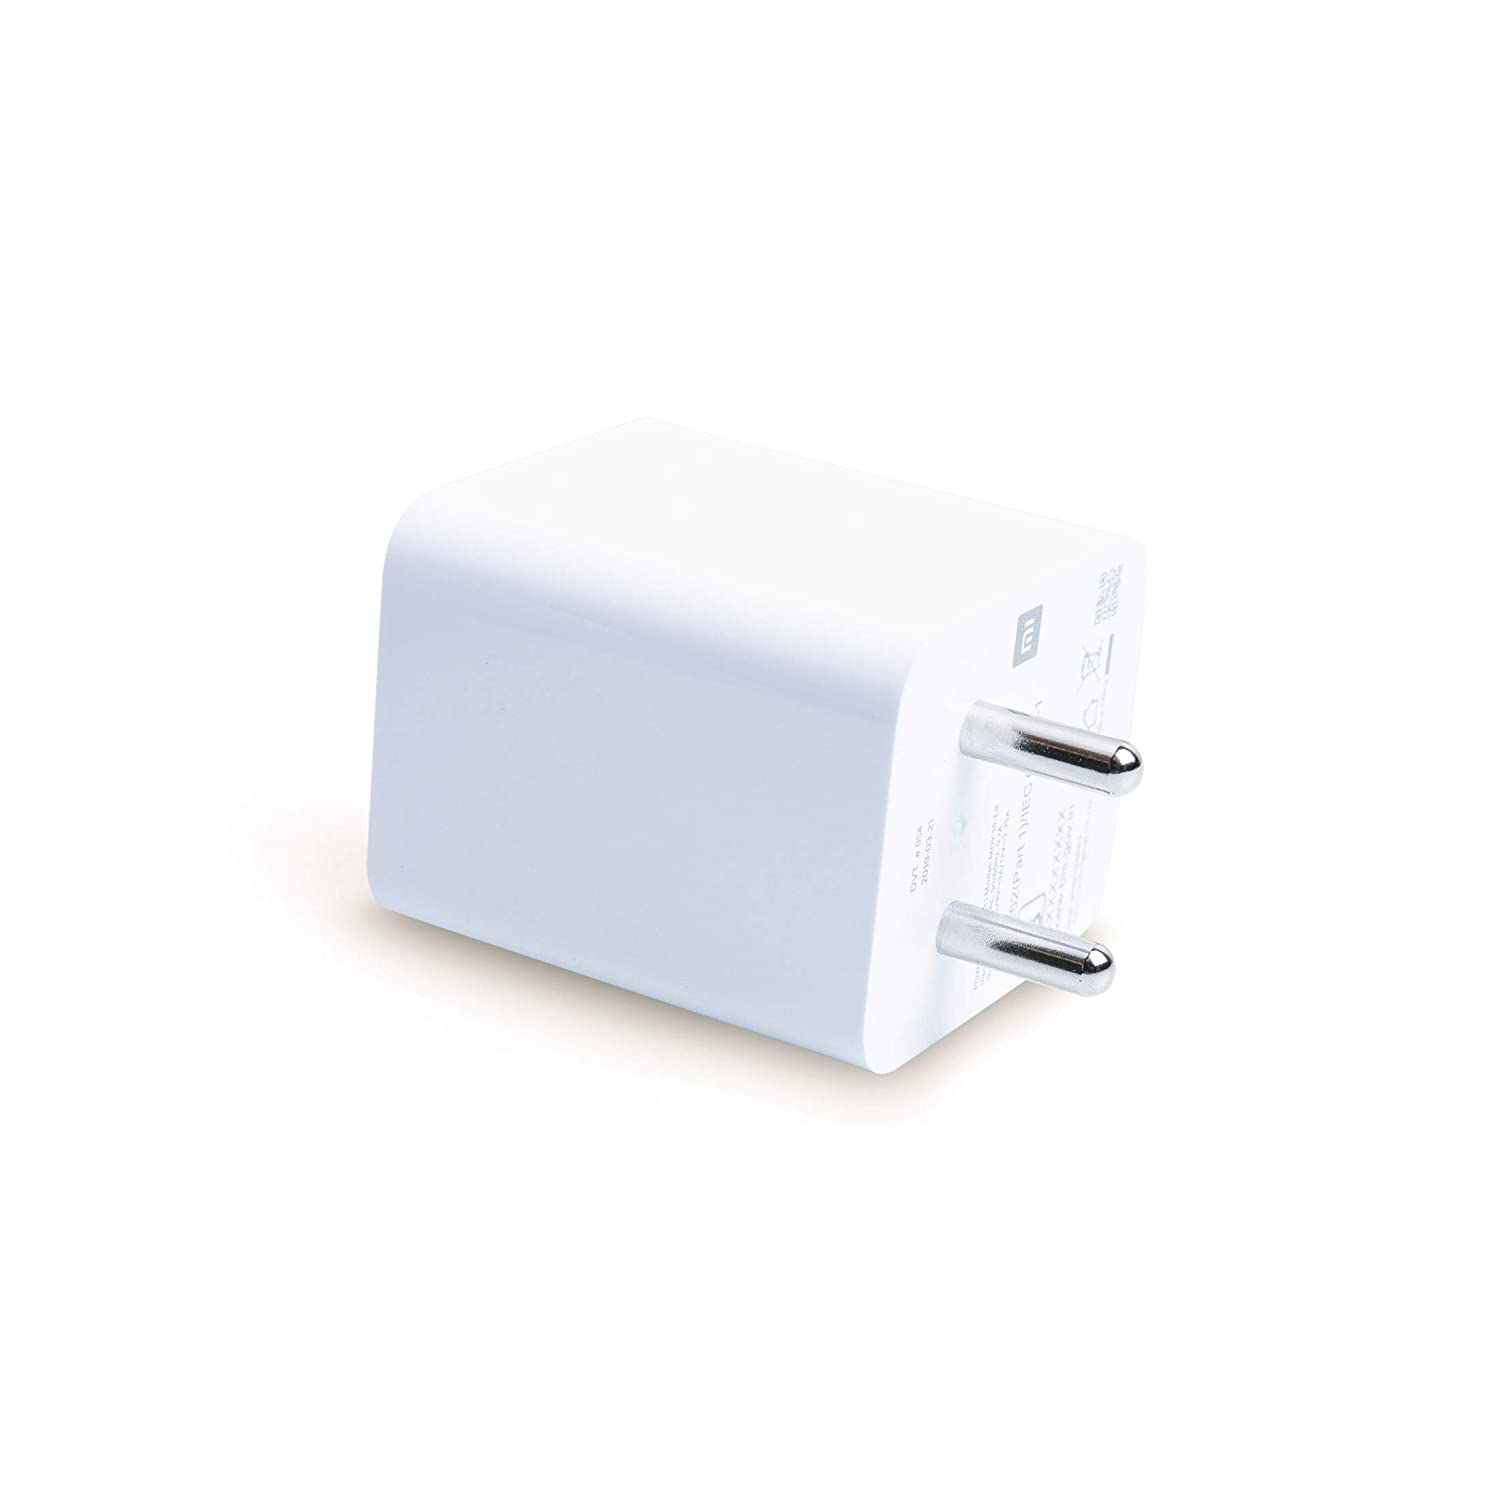 Mi Original 27W Superfast Charging Adapter (2021 Edition)